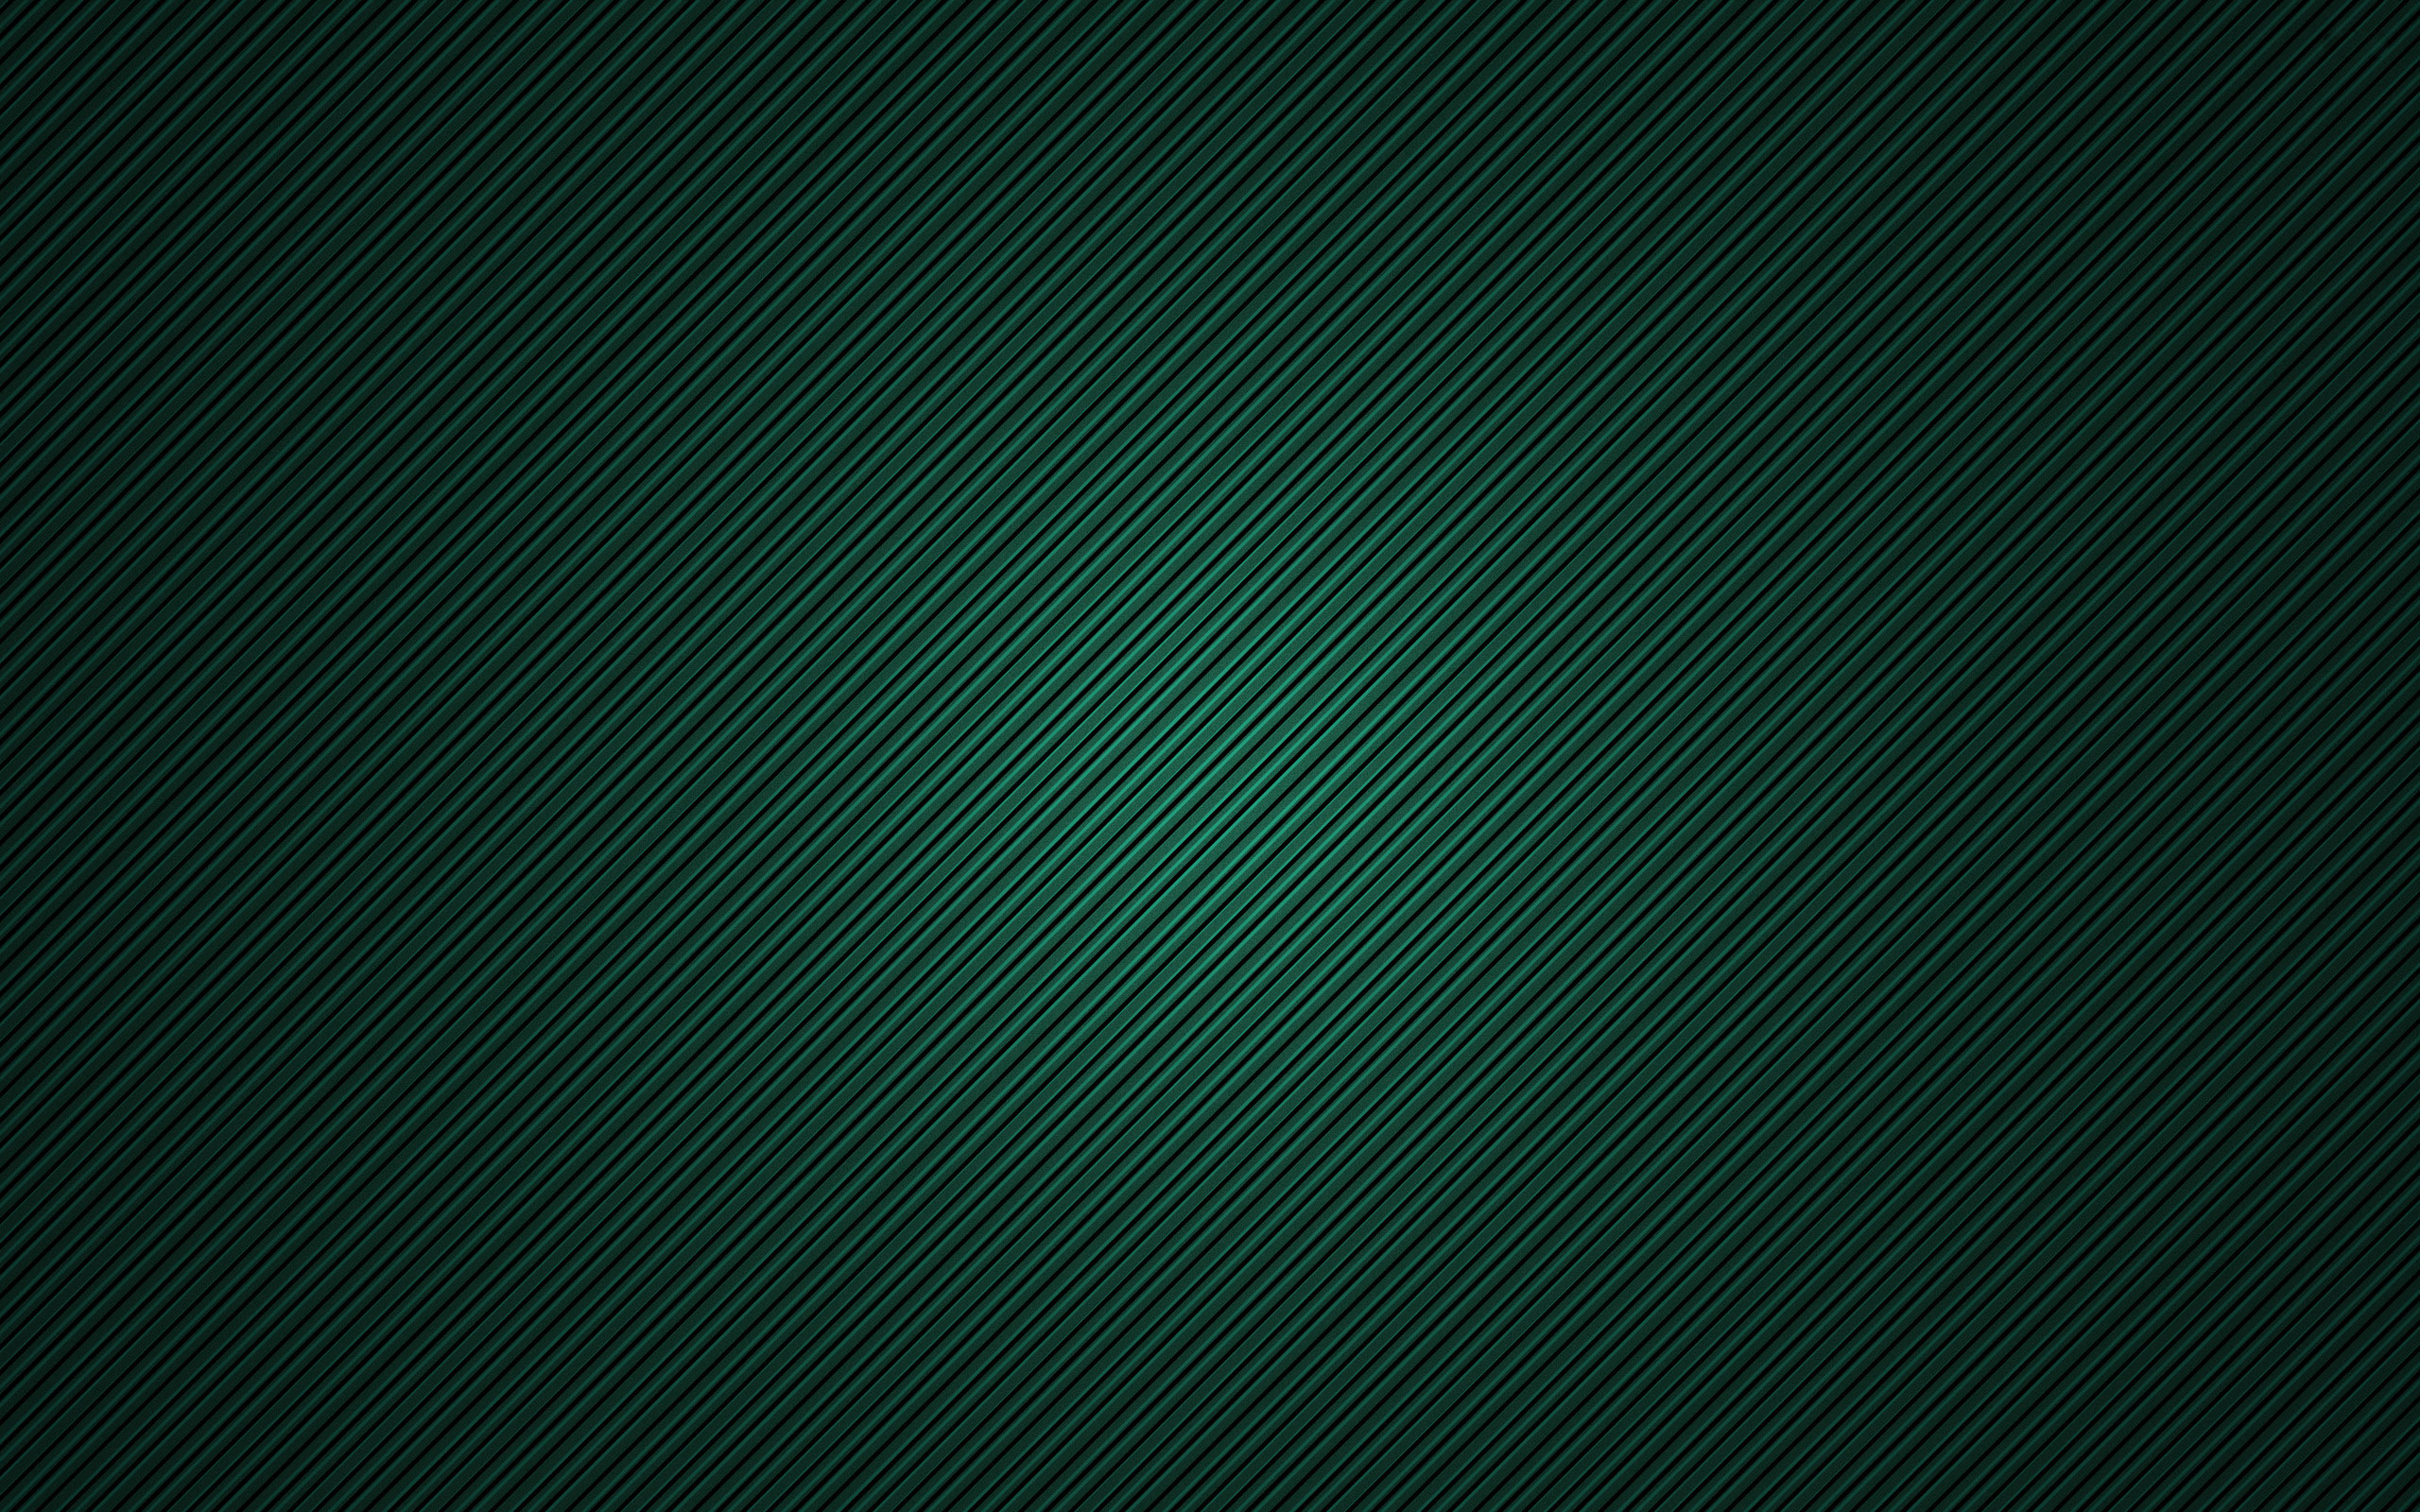 green diagonal wallpaper 45840